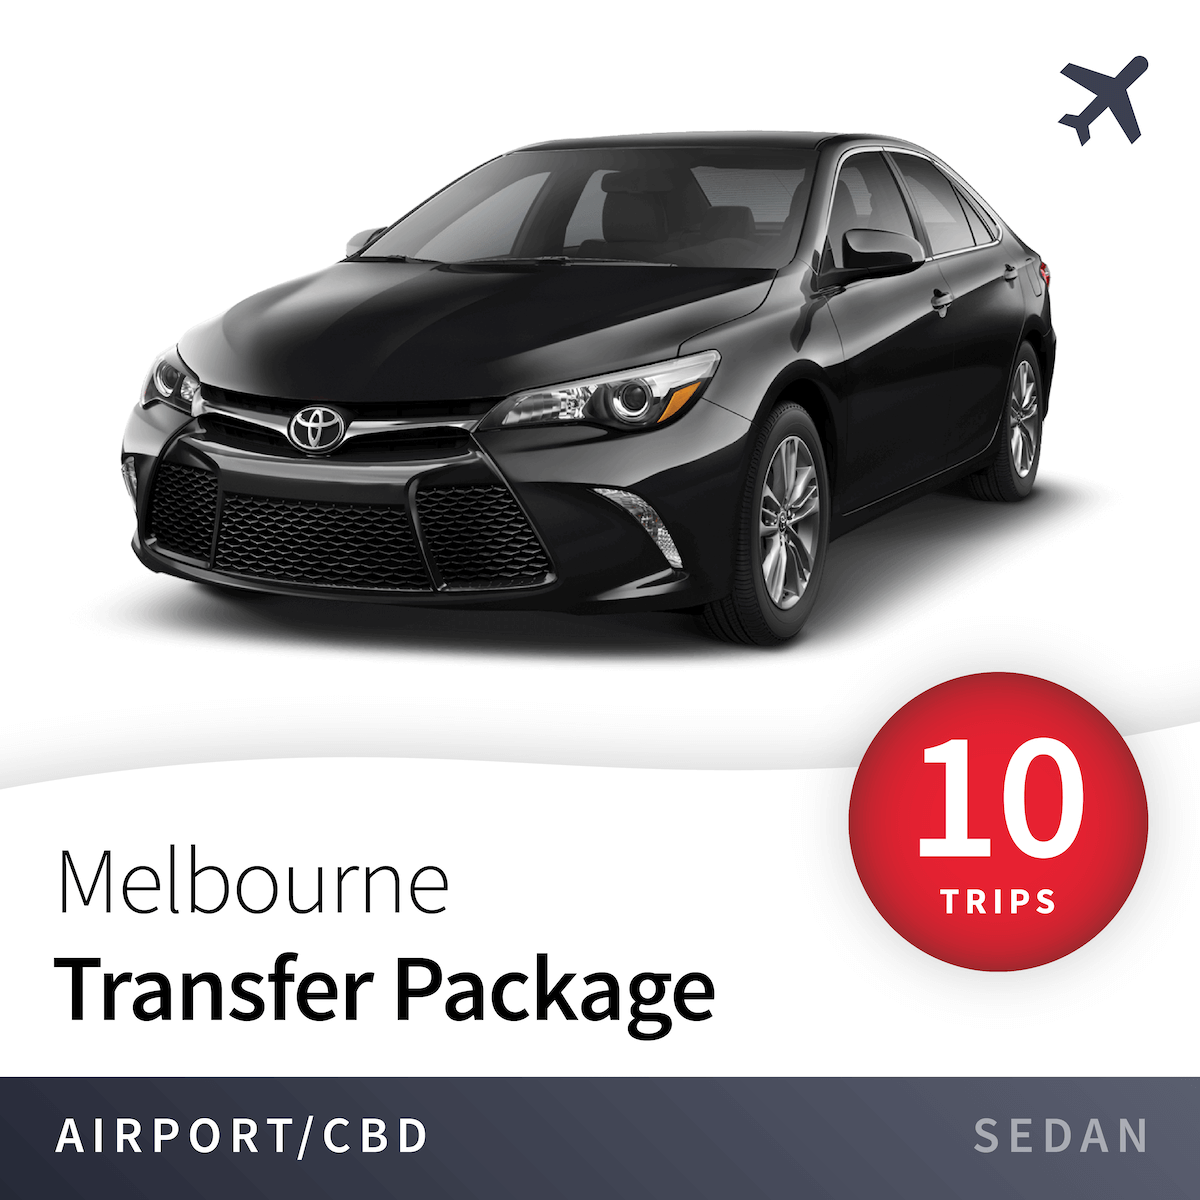 Melbourne Airport Transfer Package - Sedan (10 Trips) 11